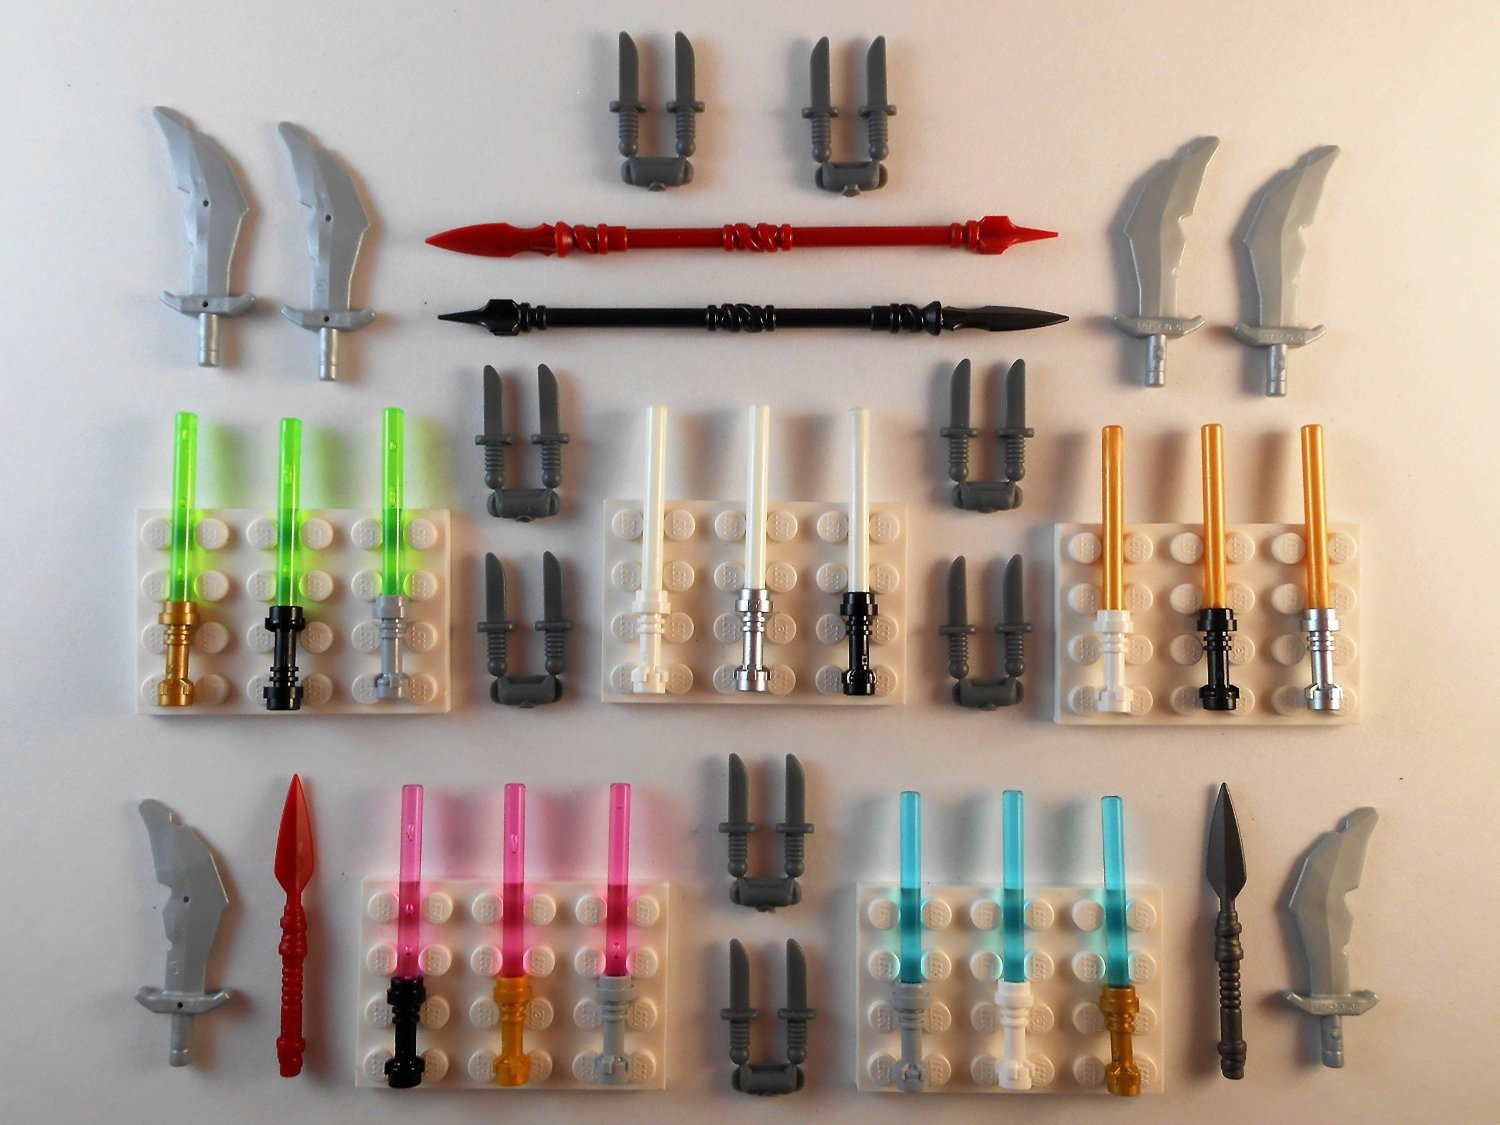 GLOW IN THE DARK Lego Lightsabers Lot of 41 Brand New! Star Wars Weapons